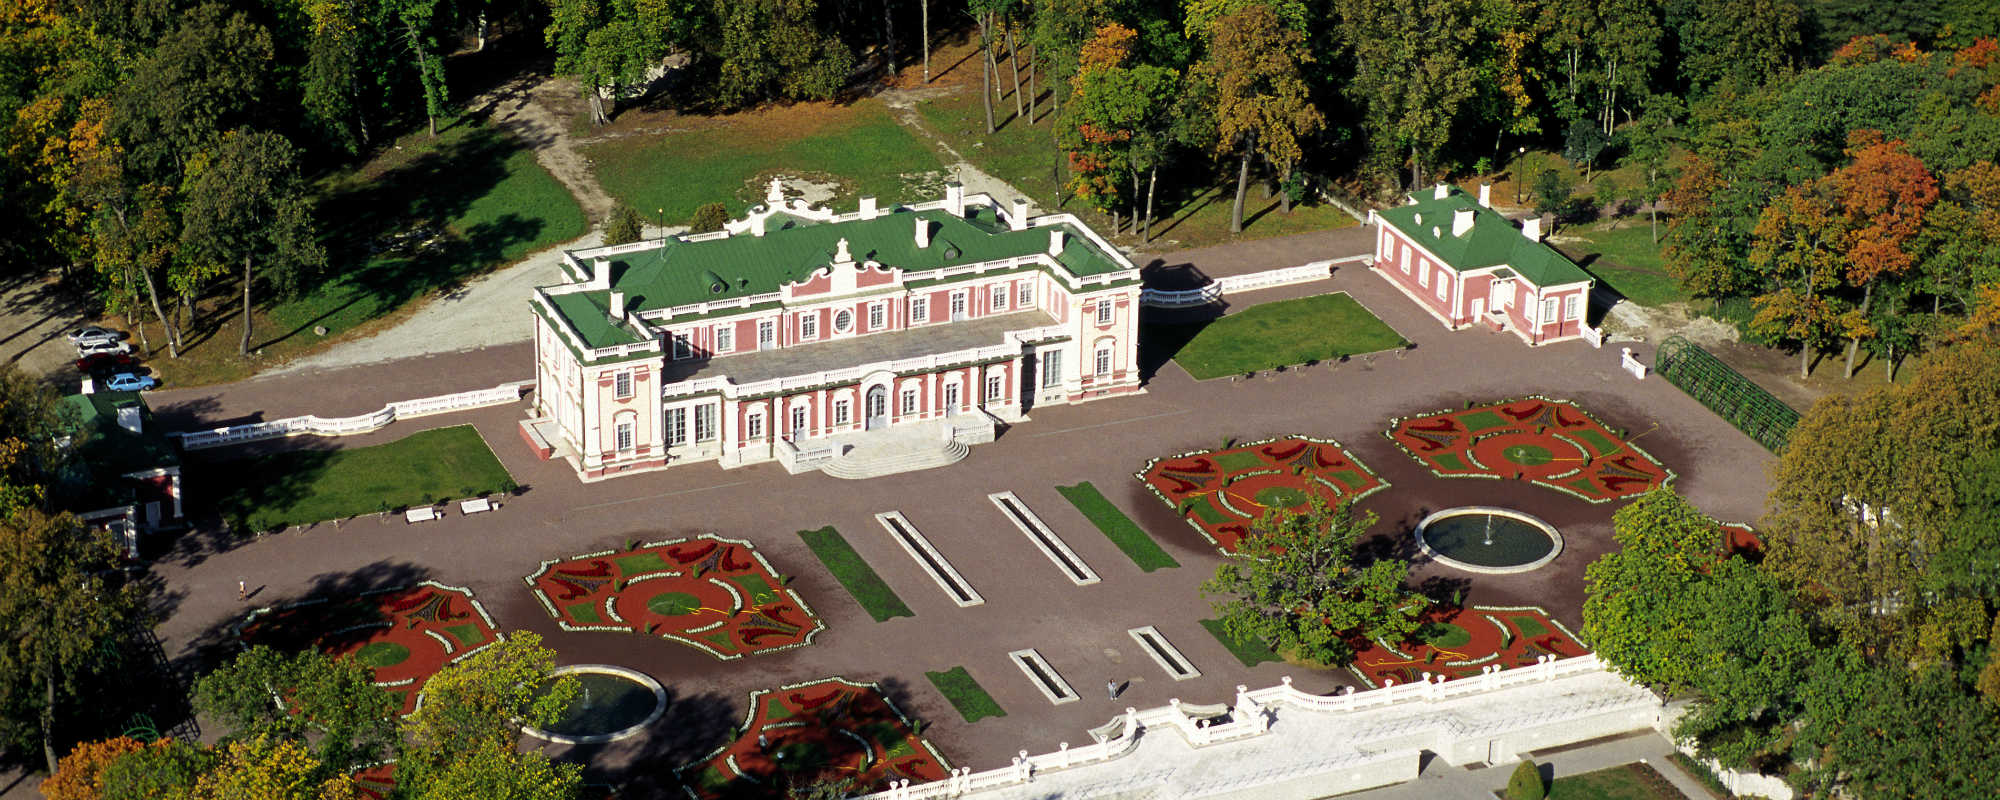 Beautiful Kadriorg Park. Picture by Toomas Volmer